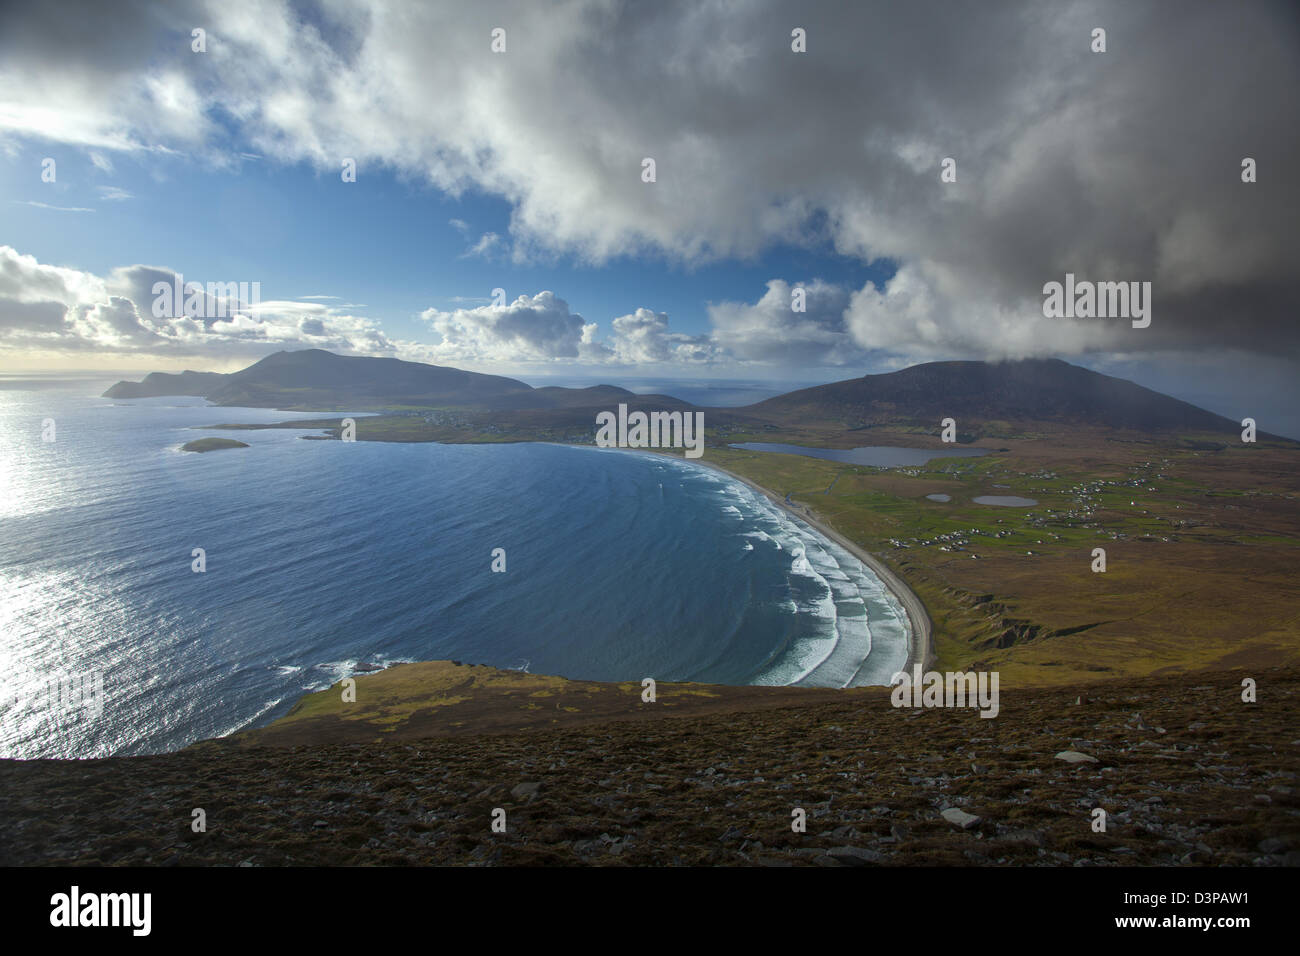 View across Achill Island towards Croaghaun, from the Menawn Cliffs, County Mayo, Ireland. - Stock Image